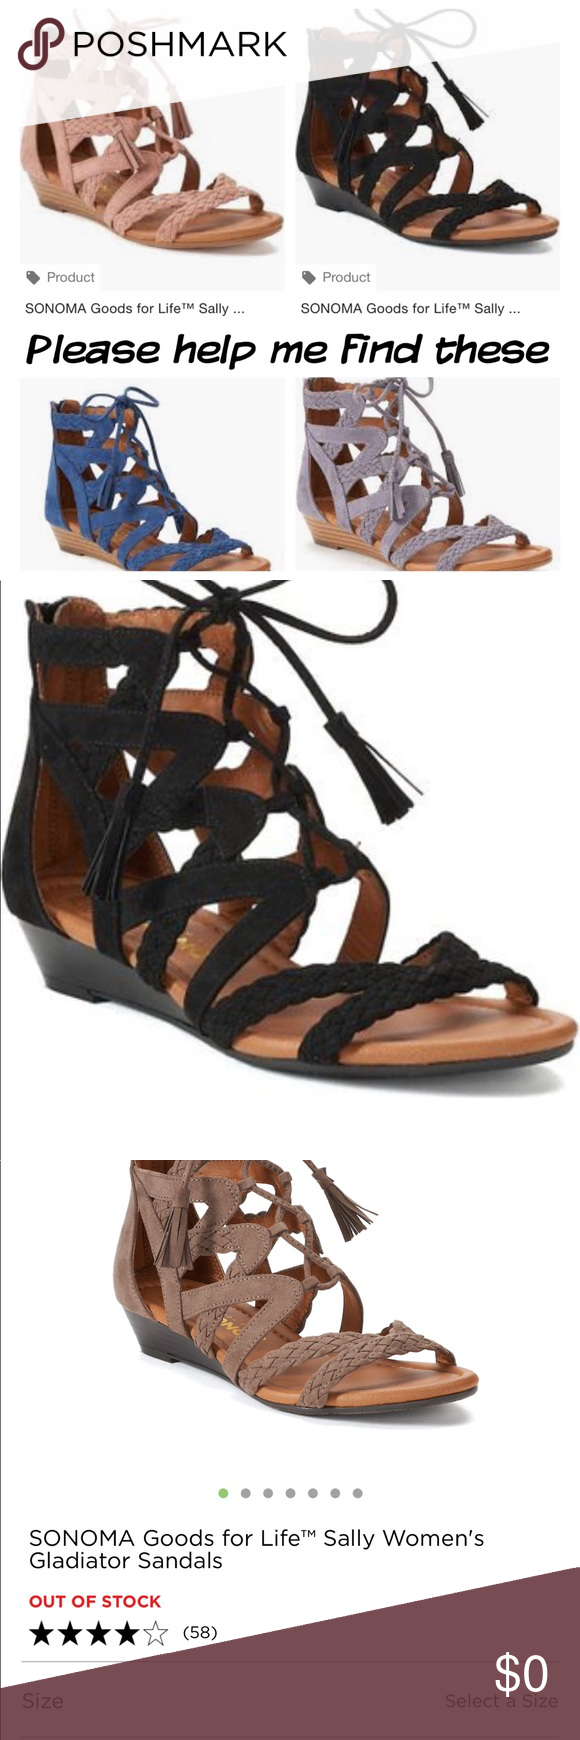 373342b30 Looking For Sonoma Good Life Sally Gladiator 7.5 💃🏼Please help me find  these shoes